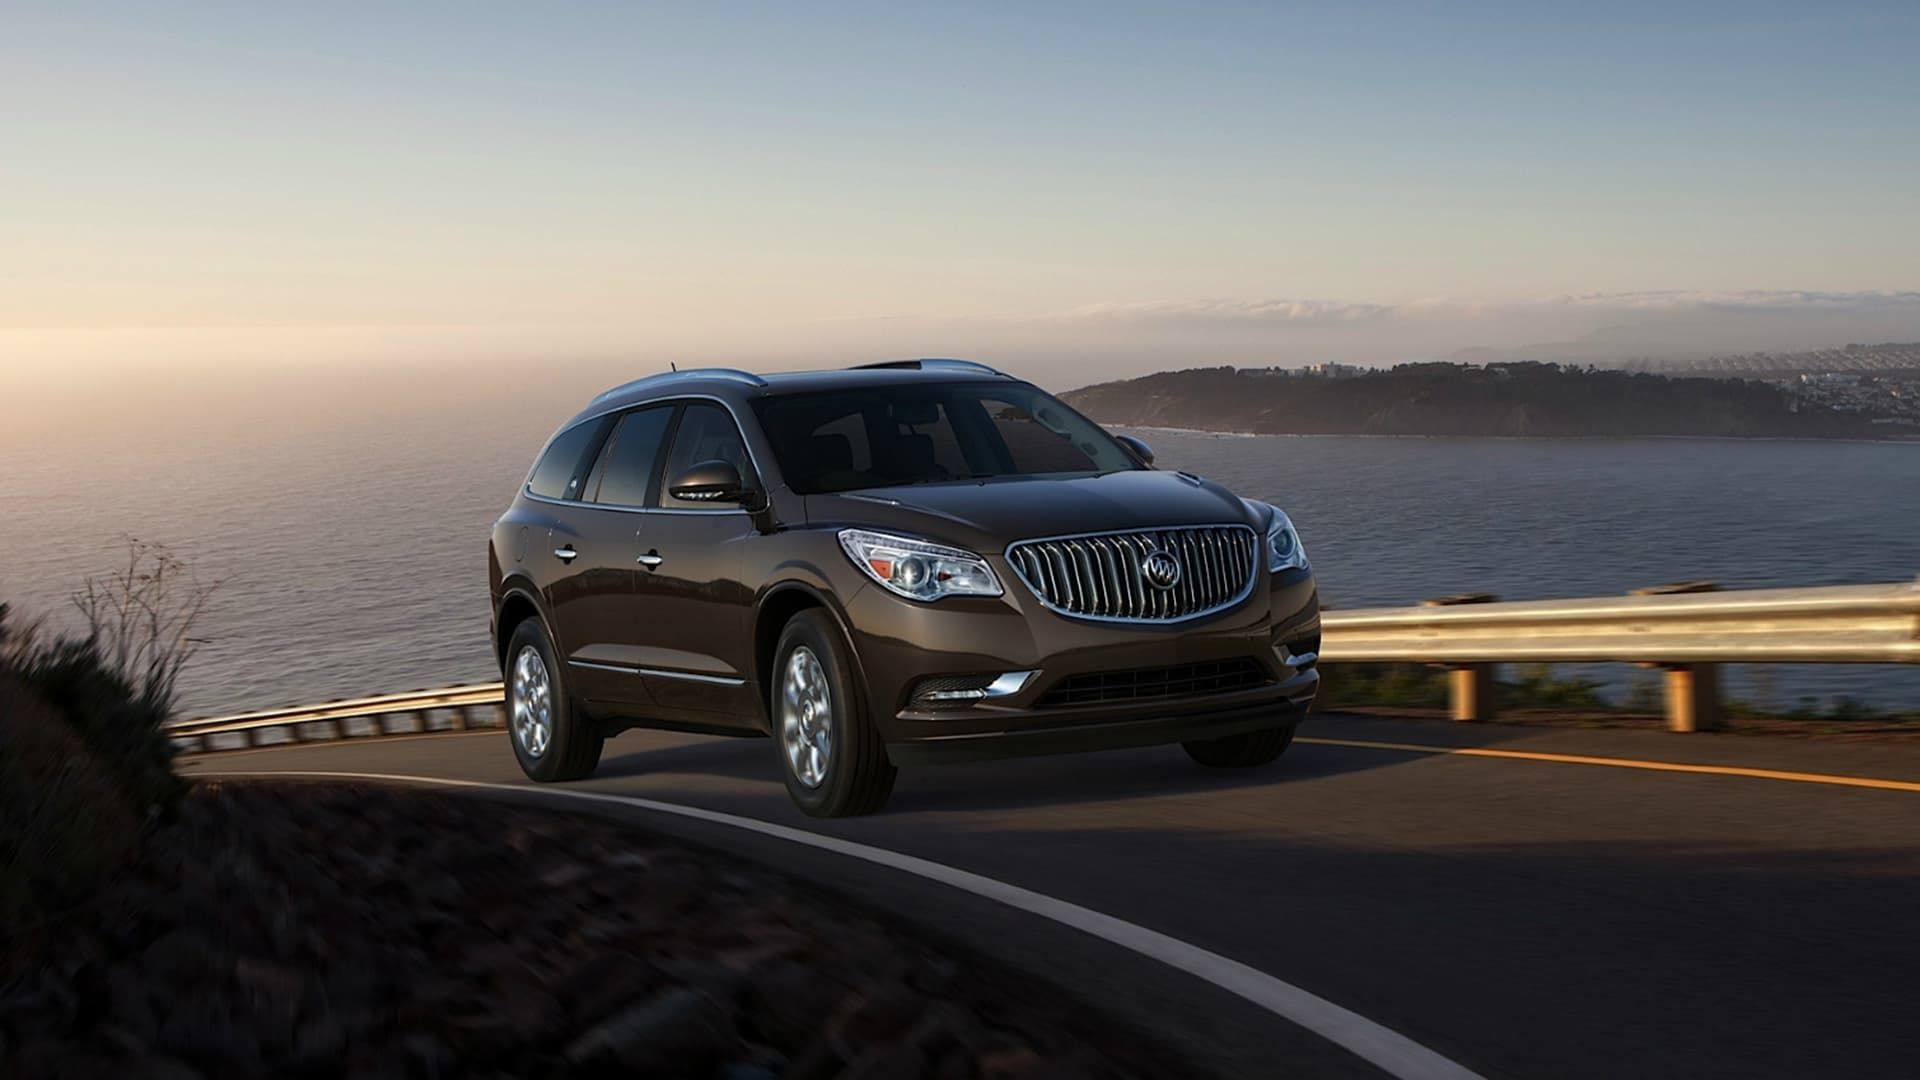 20 Buick Enclave Wallpapers High Quality Resolution Download Buick Enclave Buick Enclave